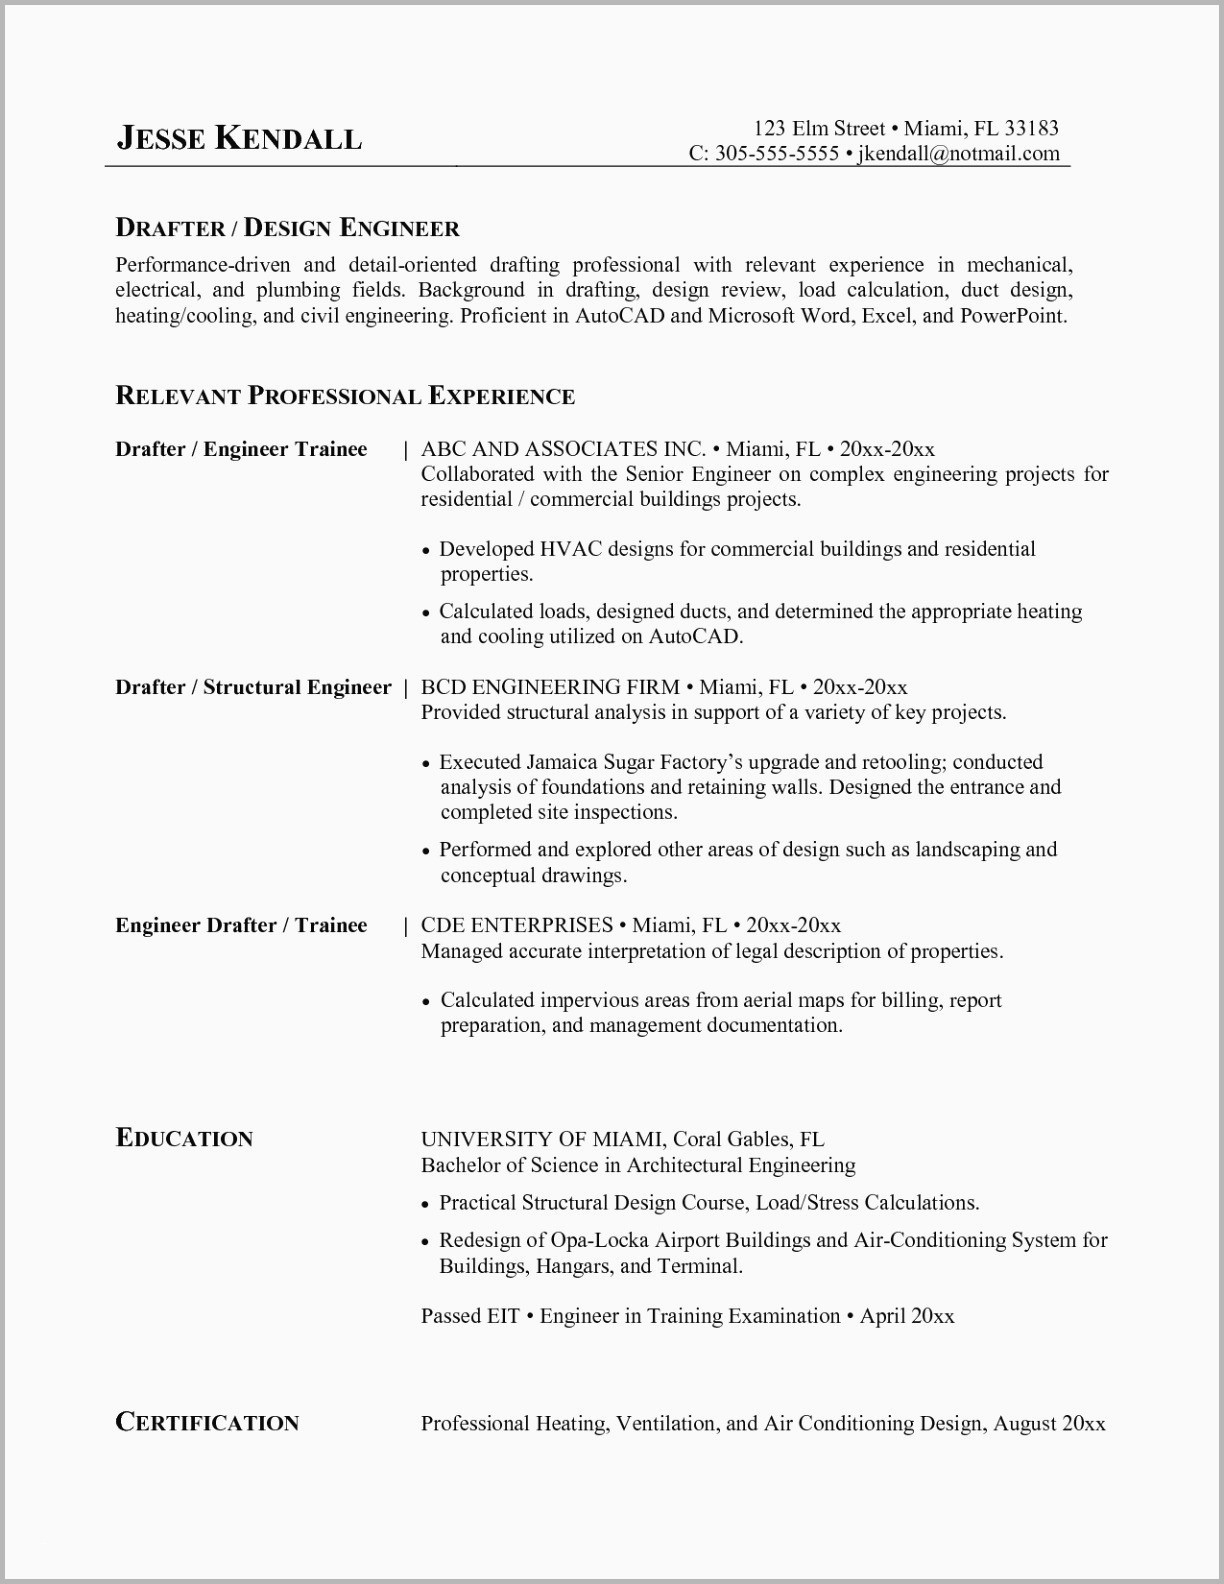 Electrical Resume Template - Journeyman Electrician Resume Beautiful Template